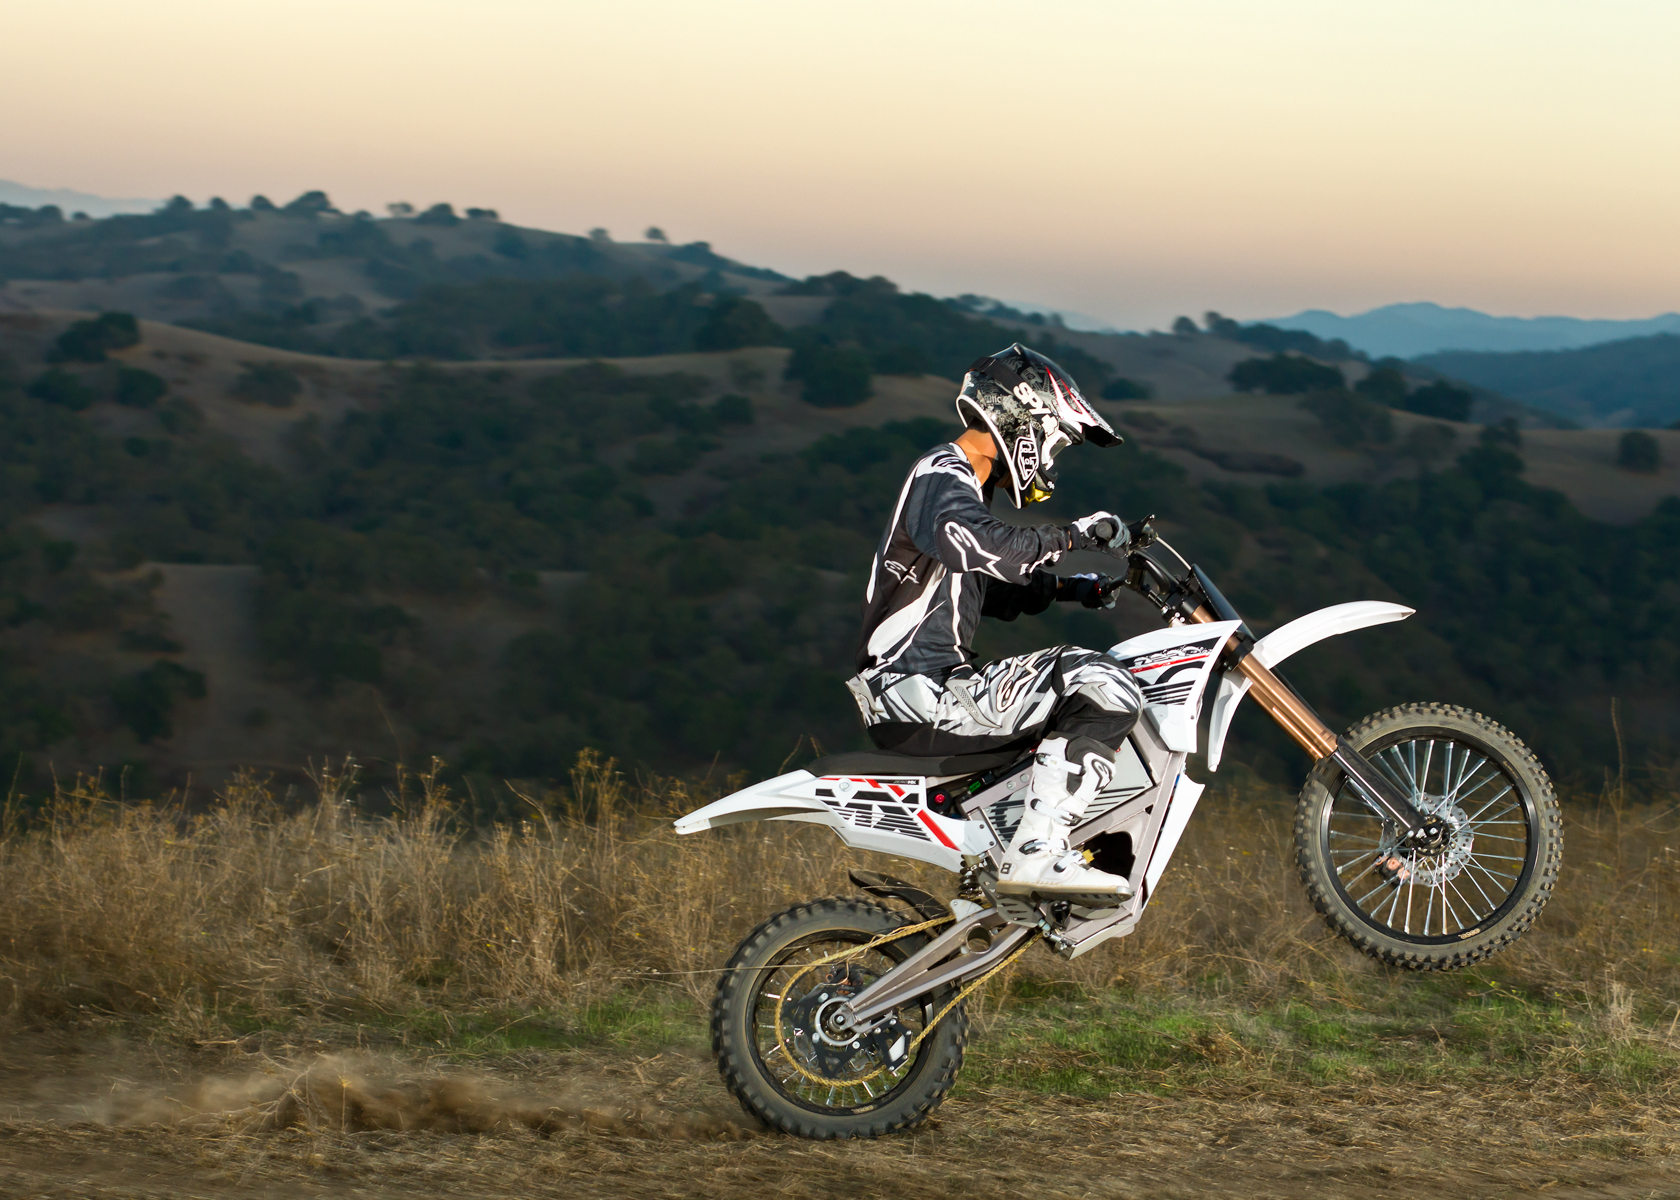 2012 Zero MX Electric Motorcycle: Wheelie